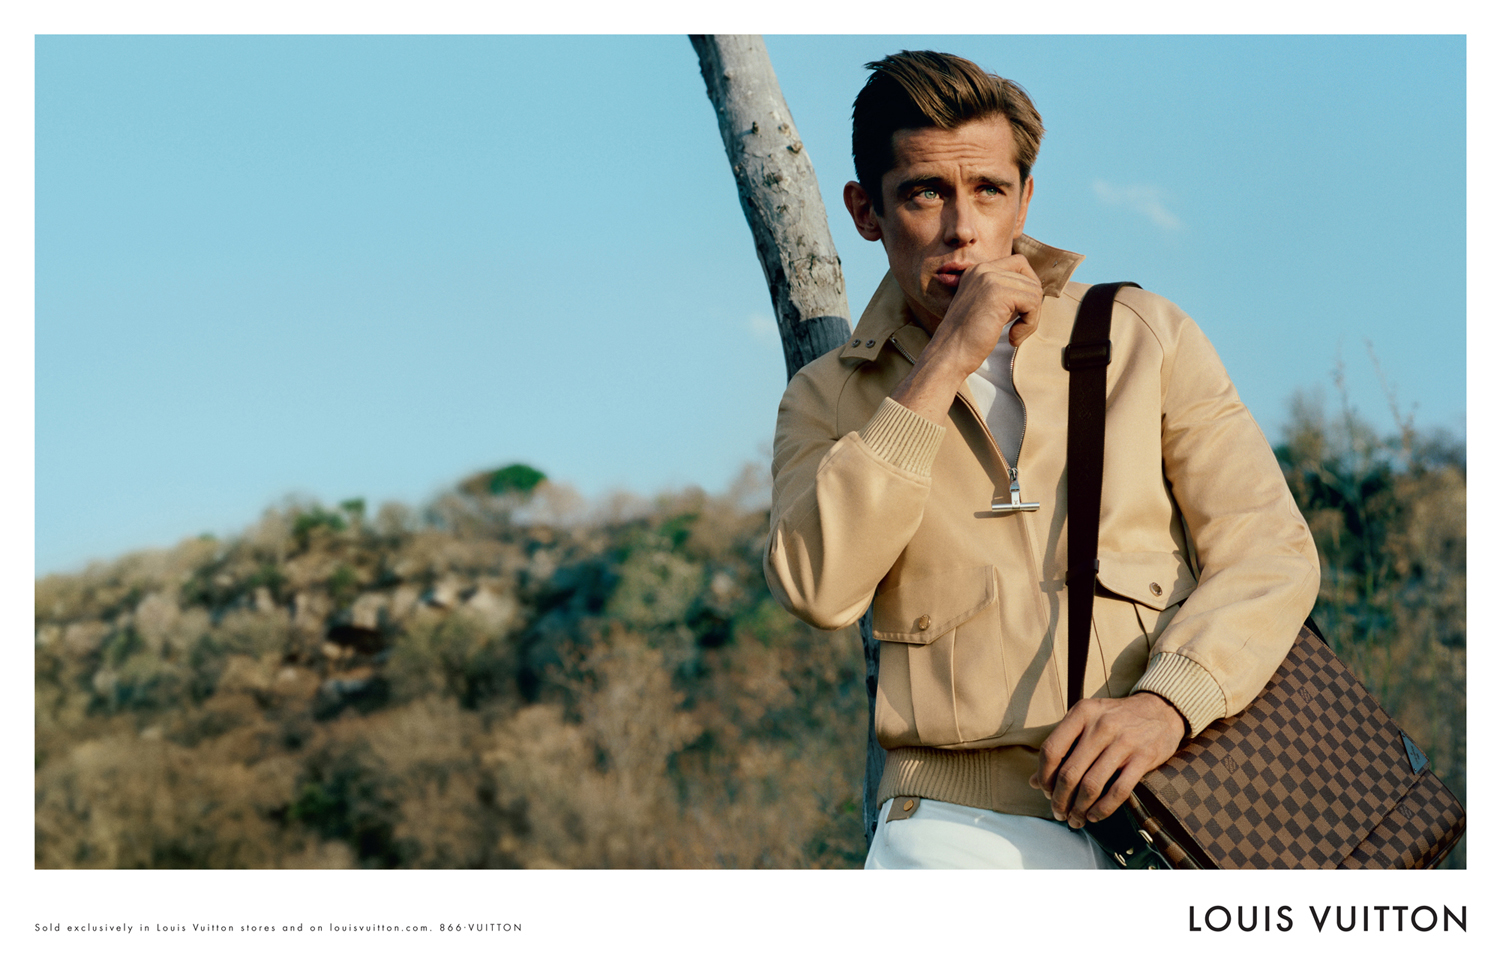 Magnus-Naddermier-Louis-Vuitton-Homme-SS12-DP-Photo-Alasdair-McLellan-01.jpg